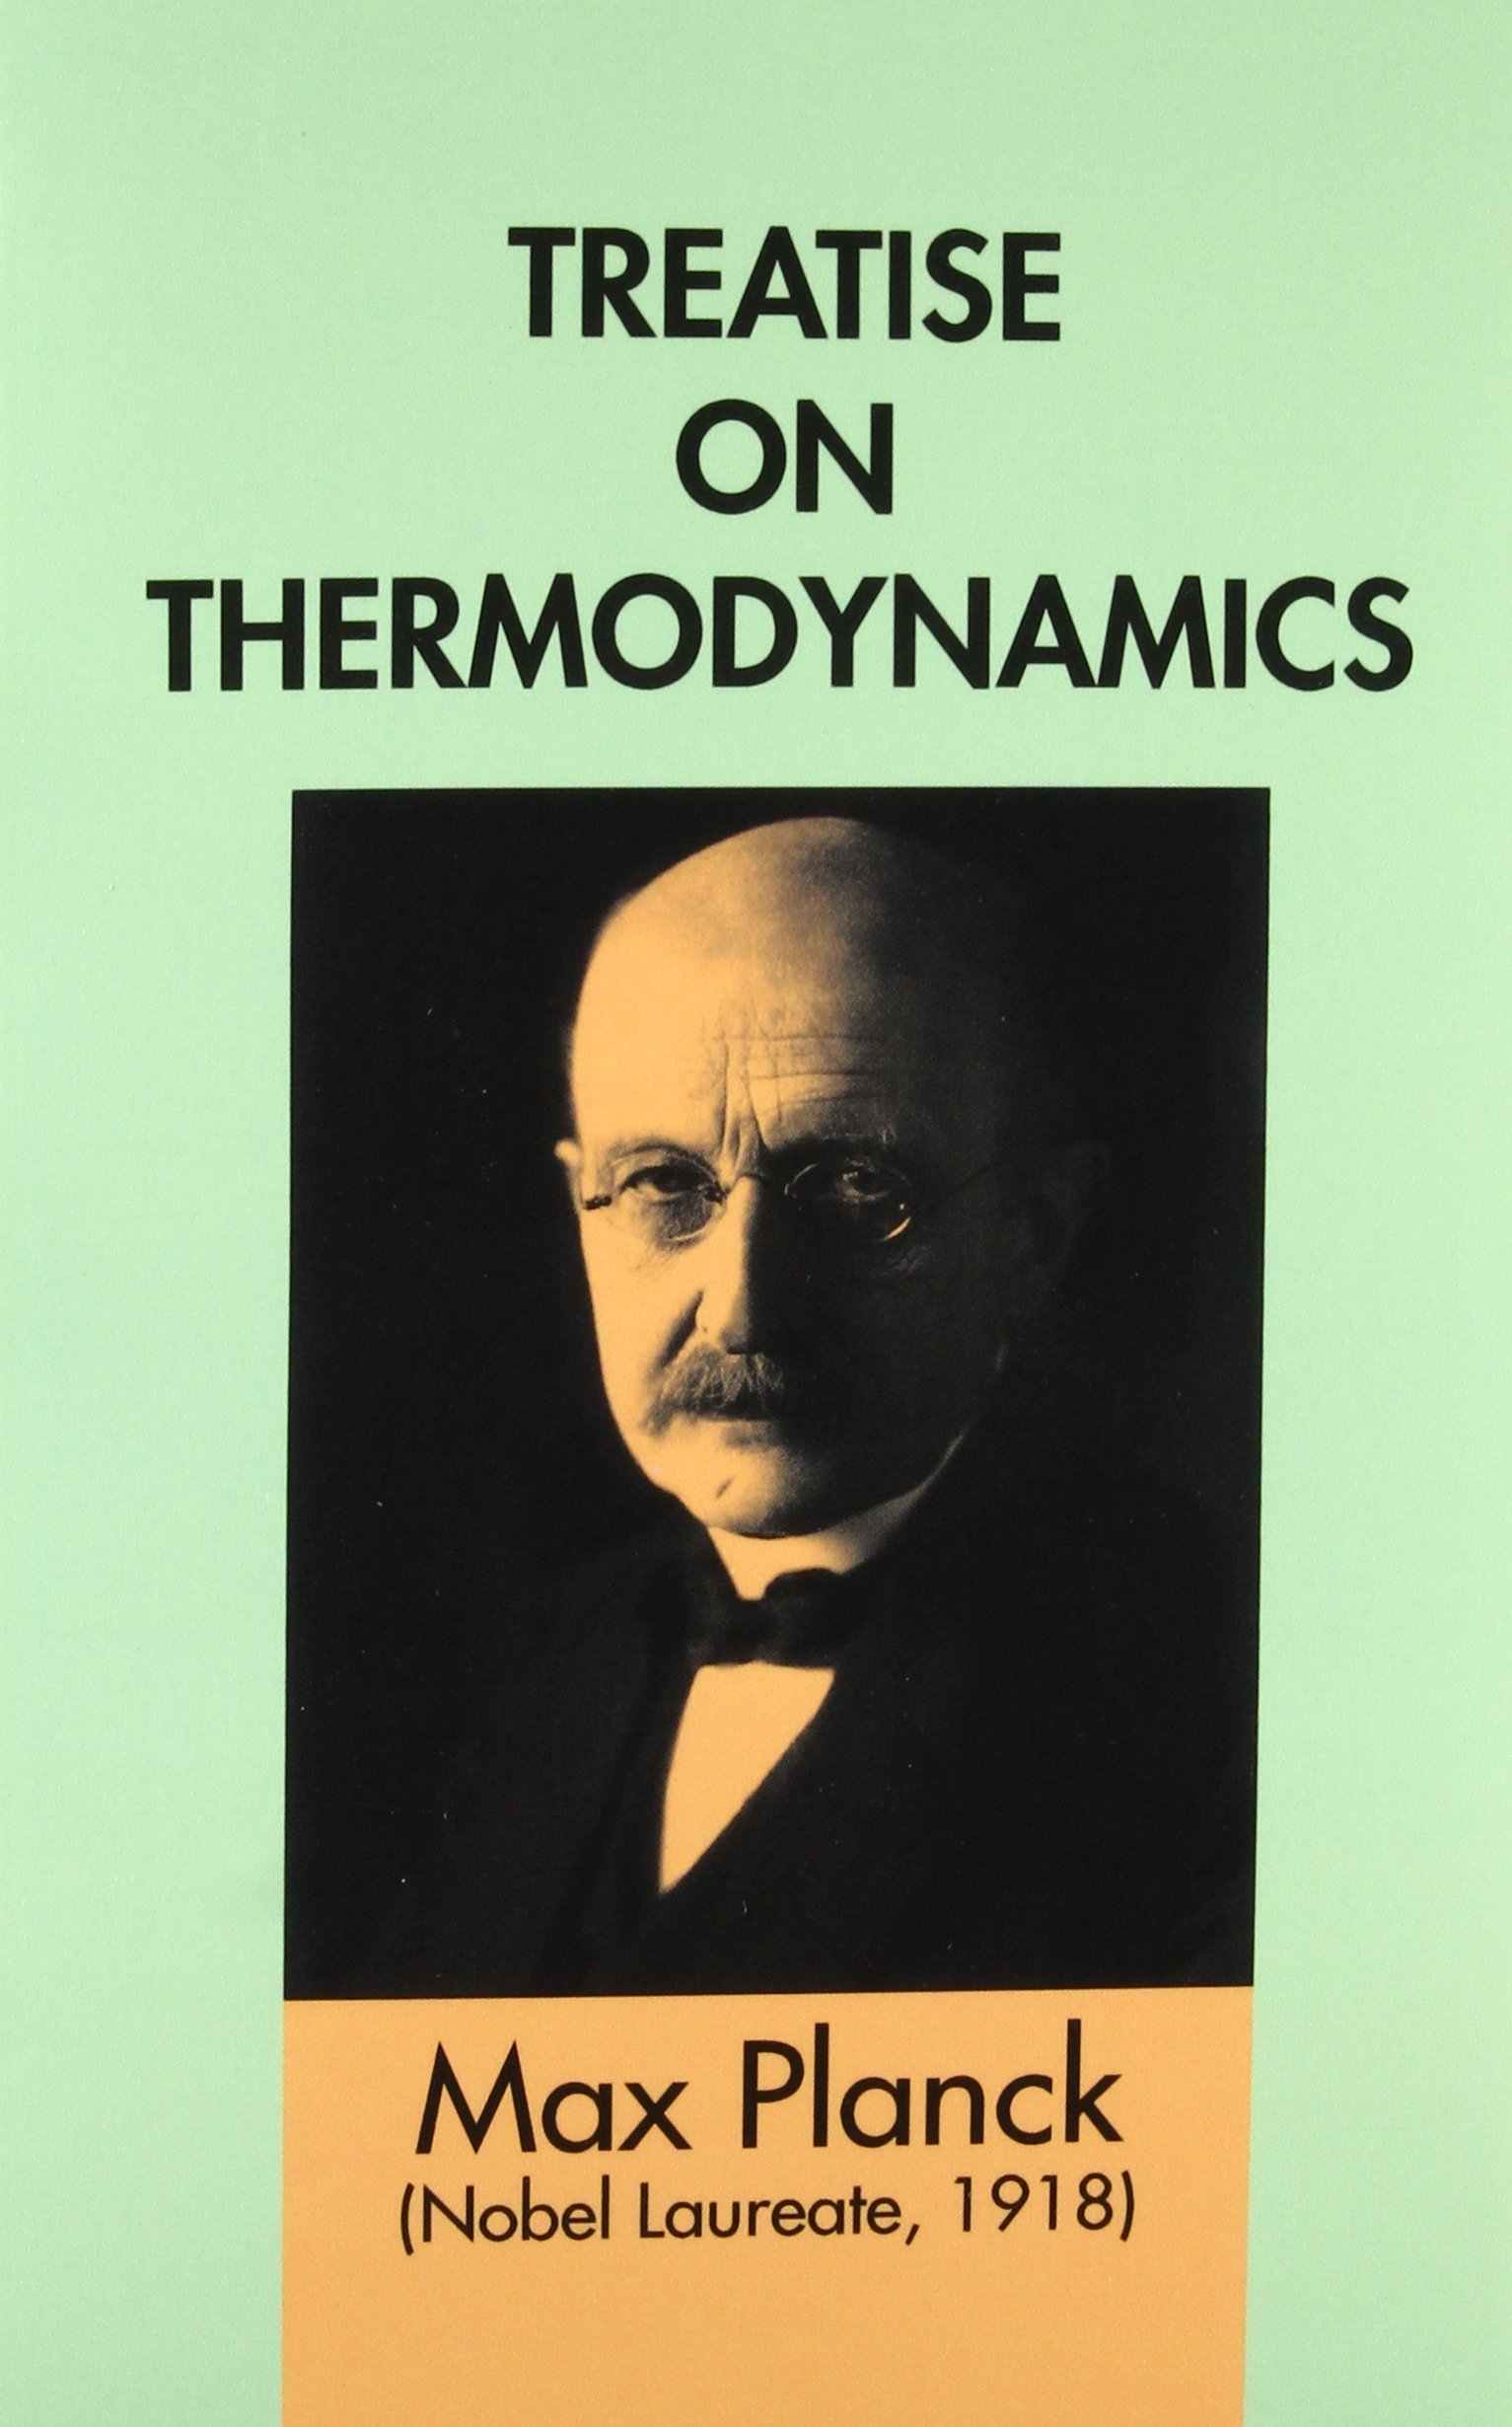 Buy Treatise on Thermodynamics (Dover Books on Physics) Book Online at Low  Prices in India | Treatise on Thermodynamics (Dover Books on Physics)  Reviews ...